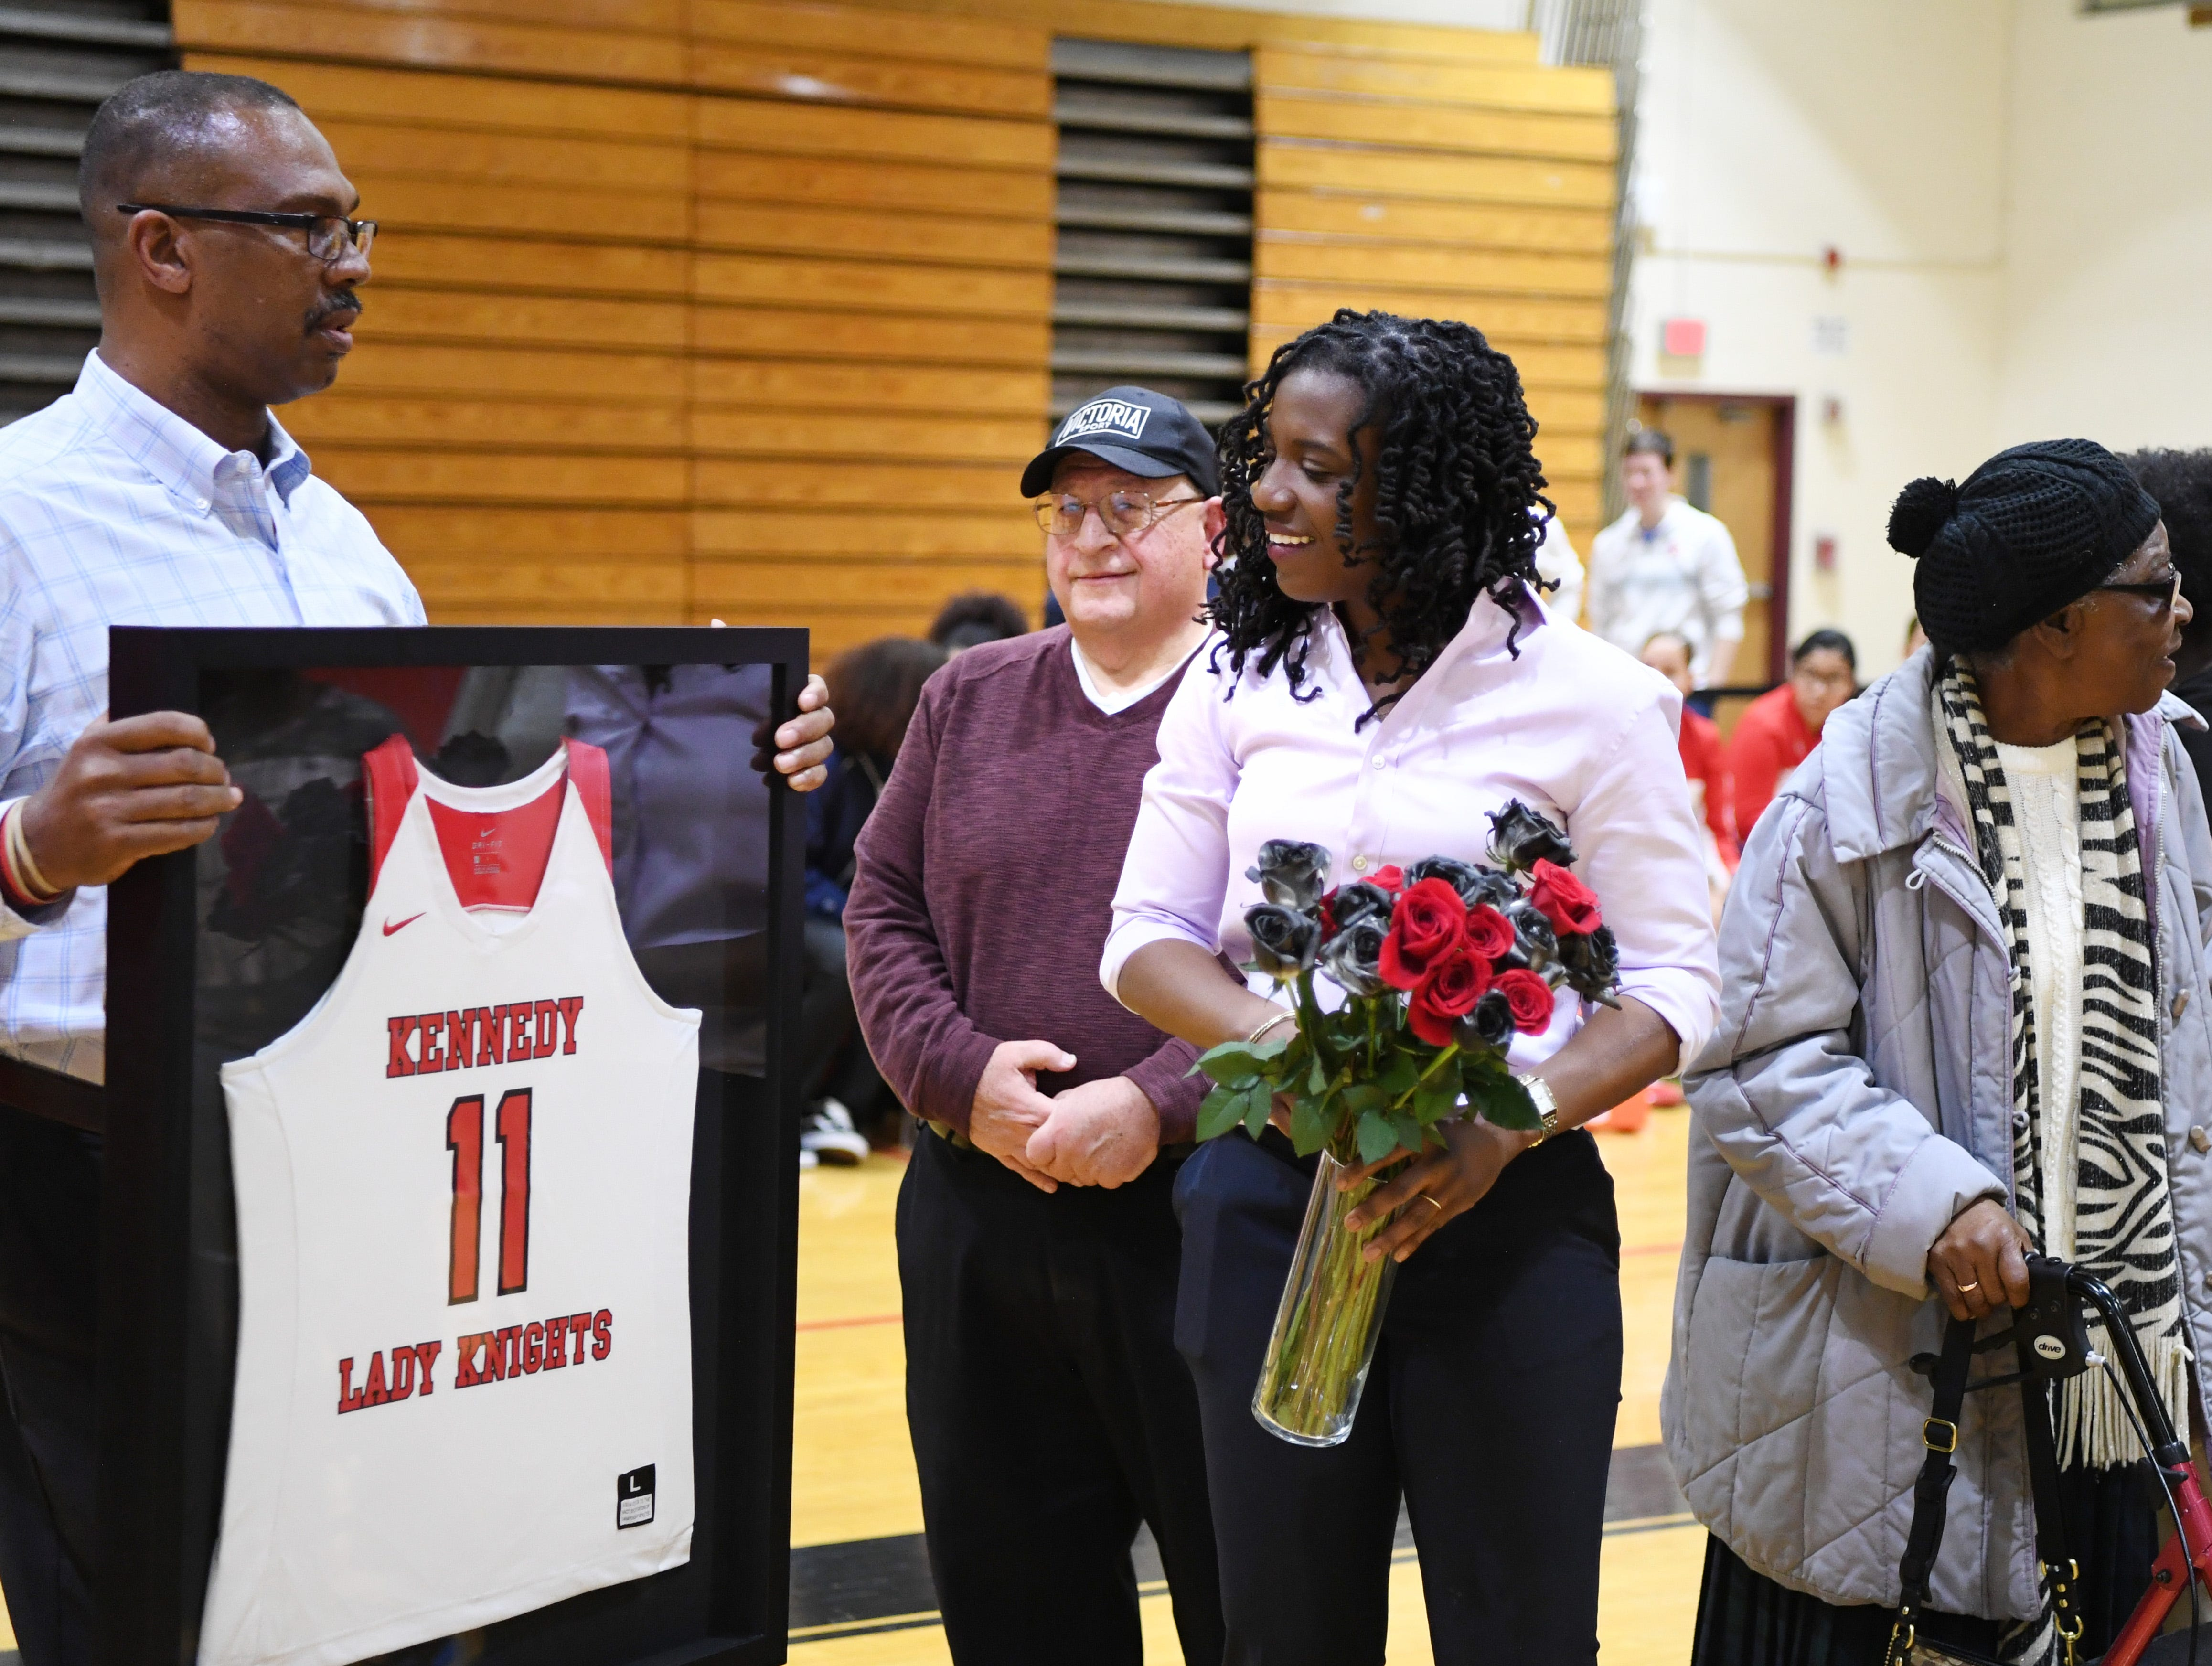 (center) Nicole Louden, who graduated from Kennedy High School in 2001 with a career total of 2,928 points, is honored in a pregame ceremony before the start of a Kennedy girls varsity basketball home game on Thursday, February 7, 2019. (from left) Athletic Director Scott Durham and Lou Bonora, who coached Louden her senior year.